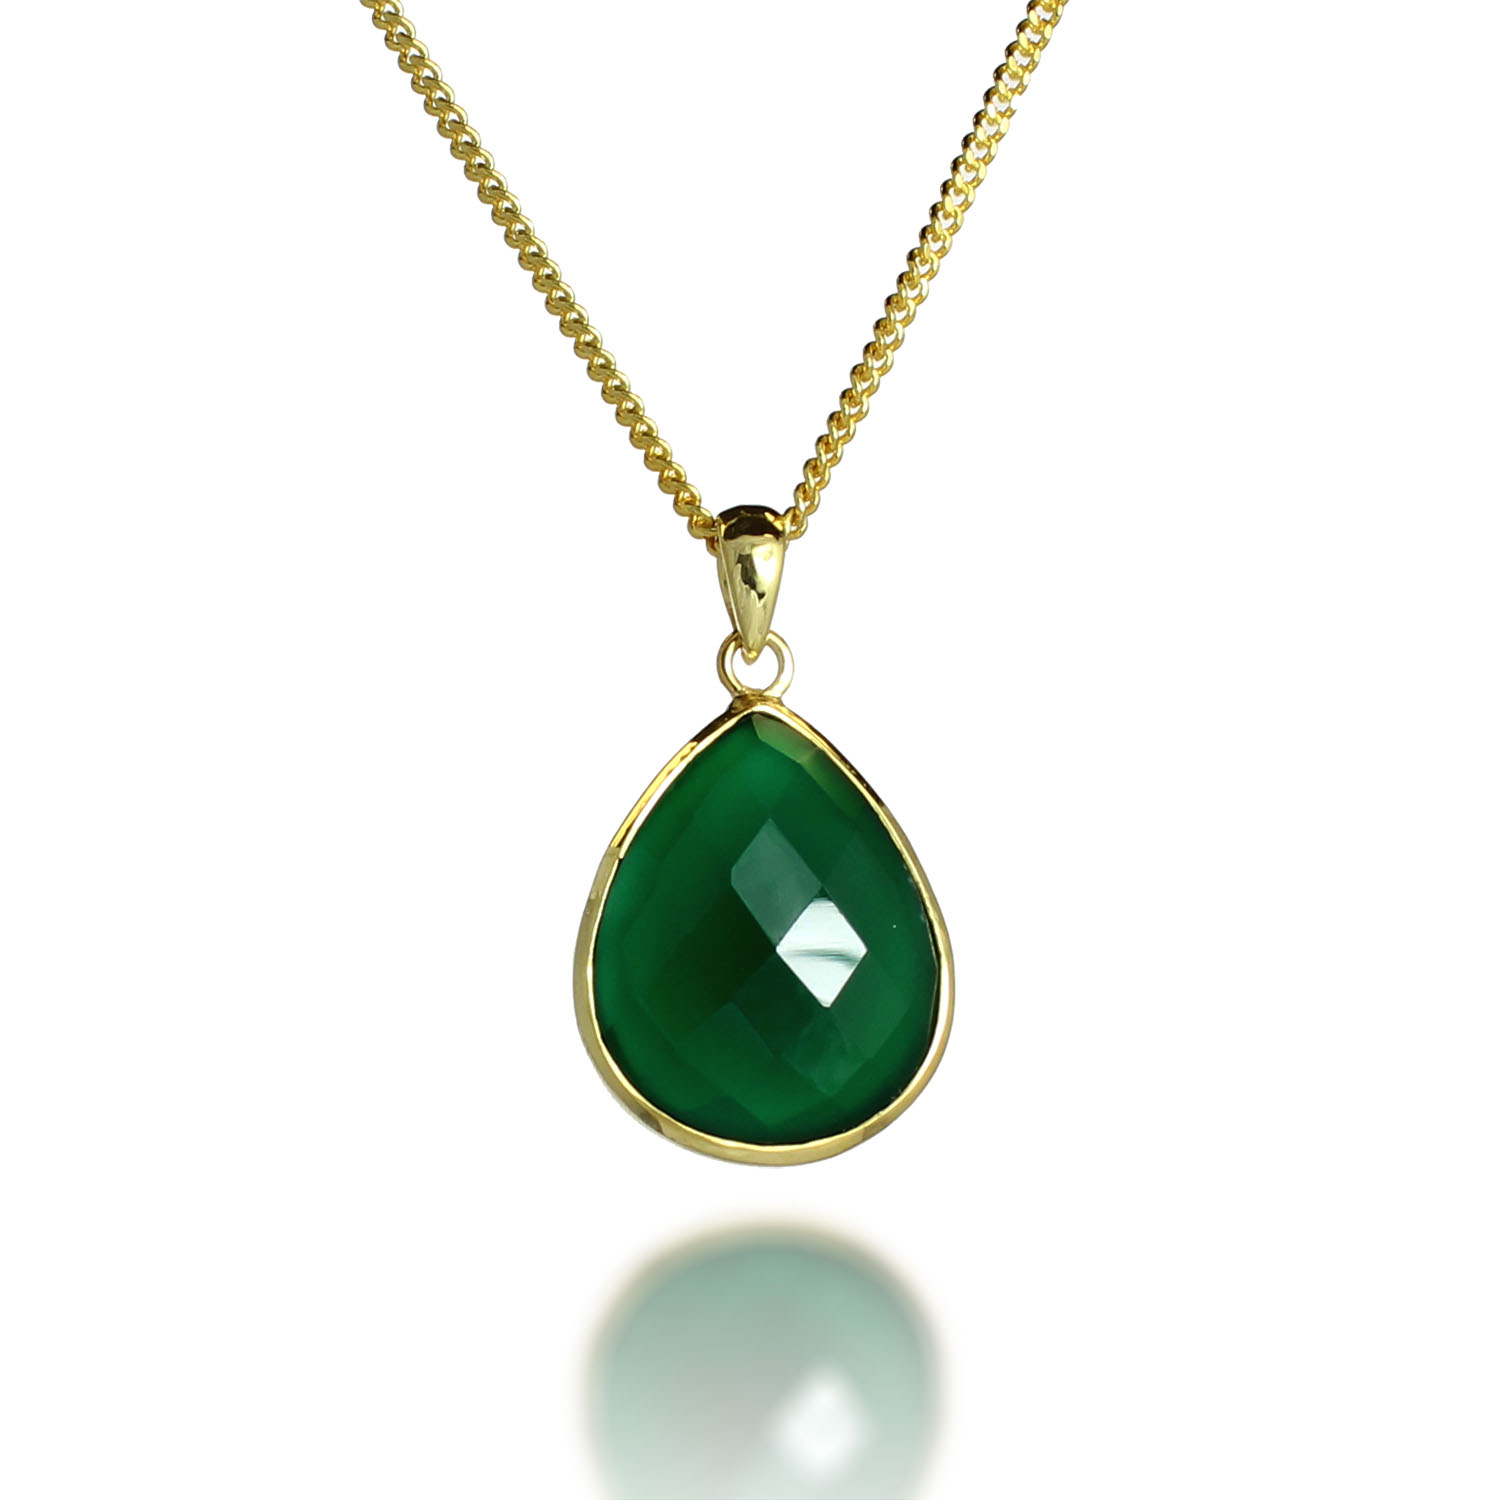 18K Gold-Plated Faceted Teardrop Green Onyx Gemstone Pendant Necklace, 17-19 inches